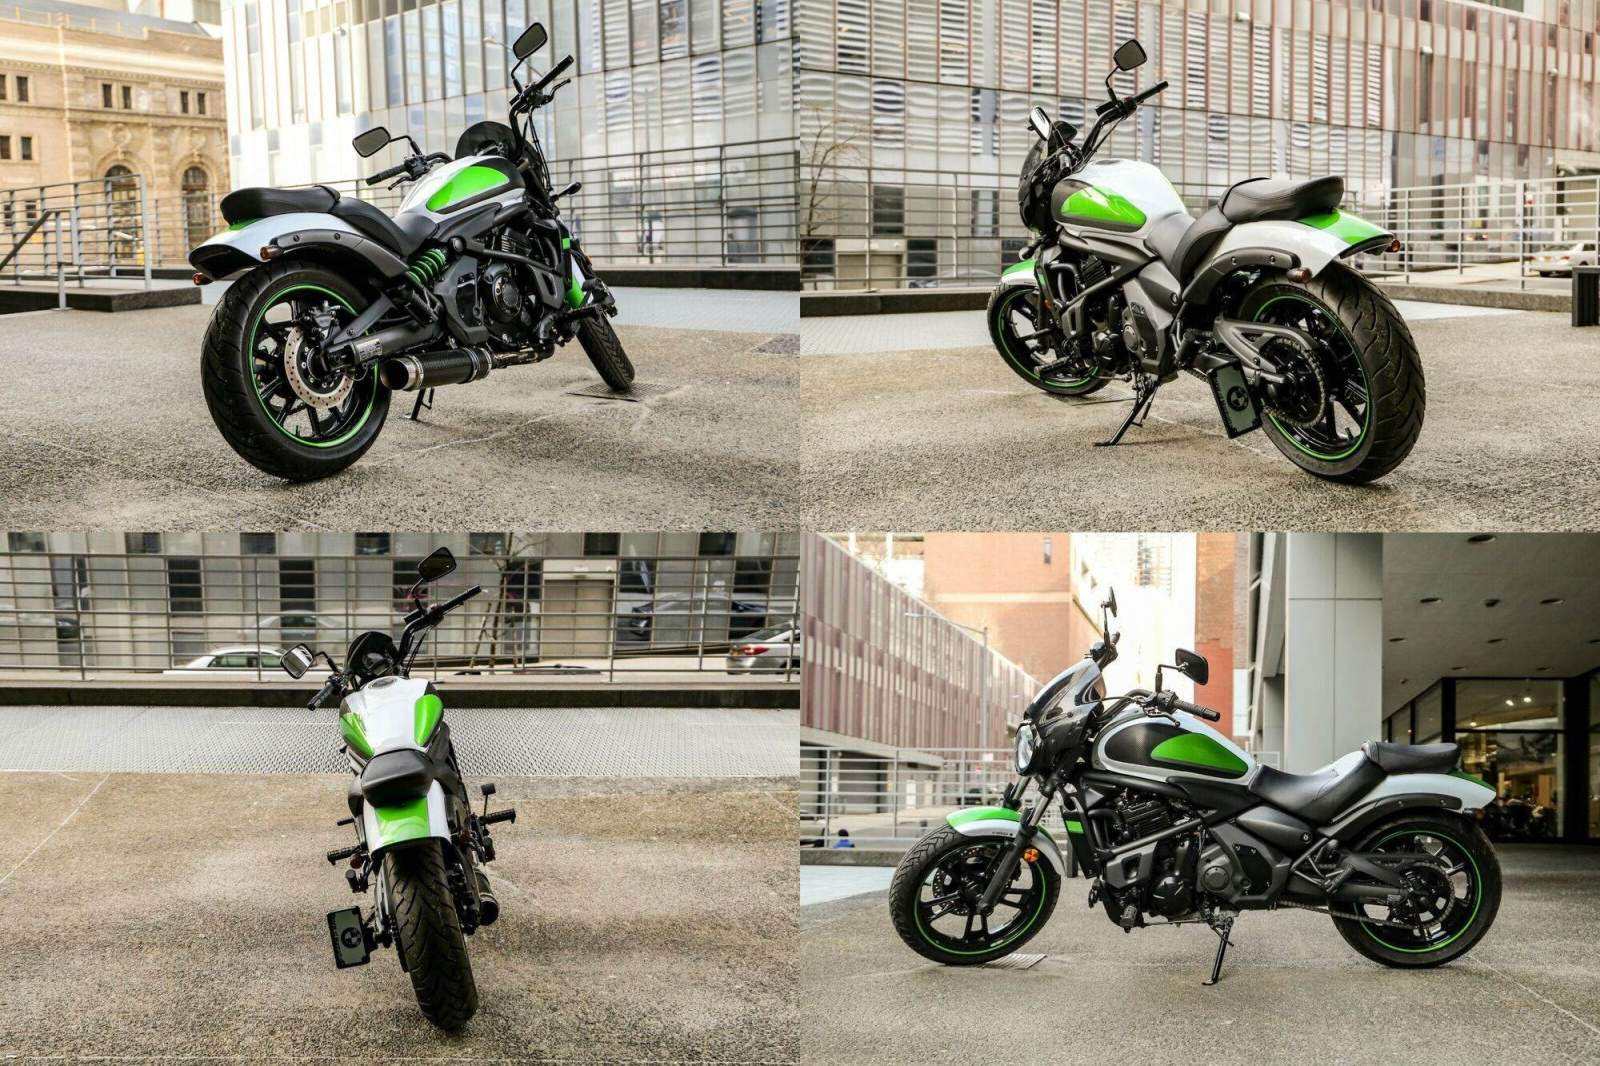 2017 Kawasaki Vulcan   for sale craigslist